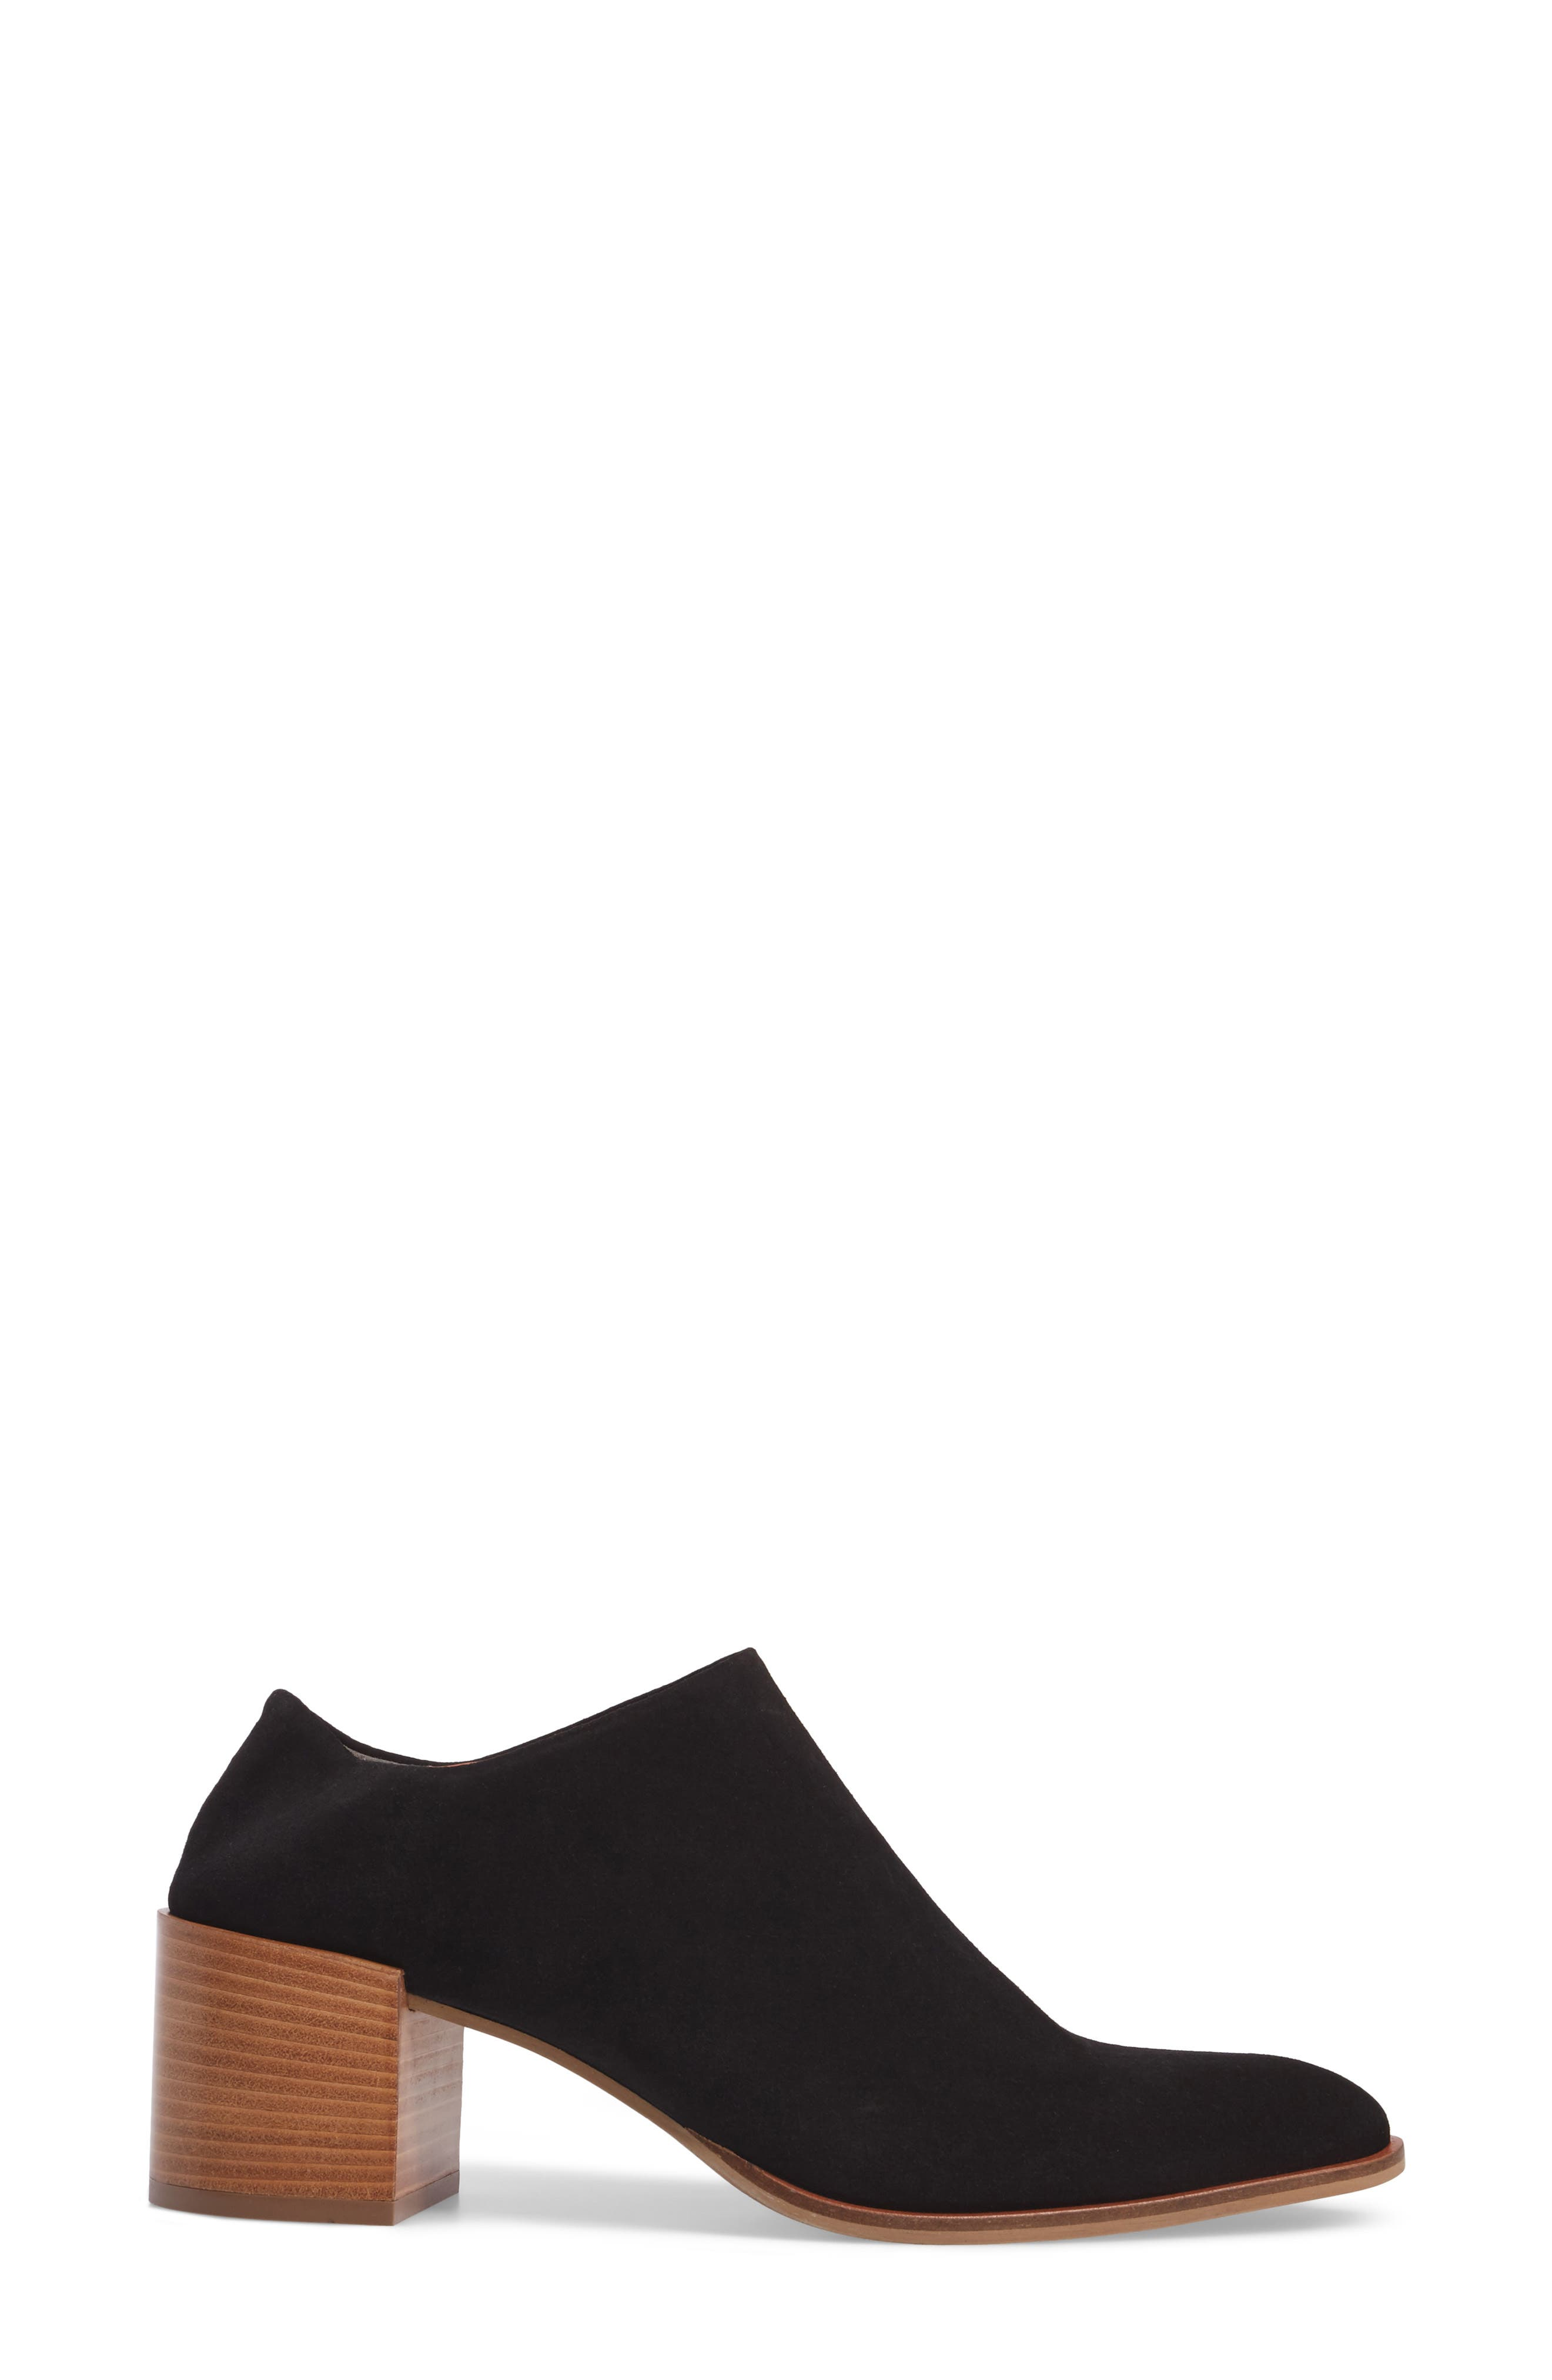 Alternate Image 3  - Everlane The Suede Heel Mule (Women)